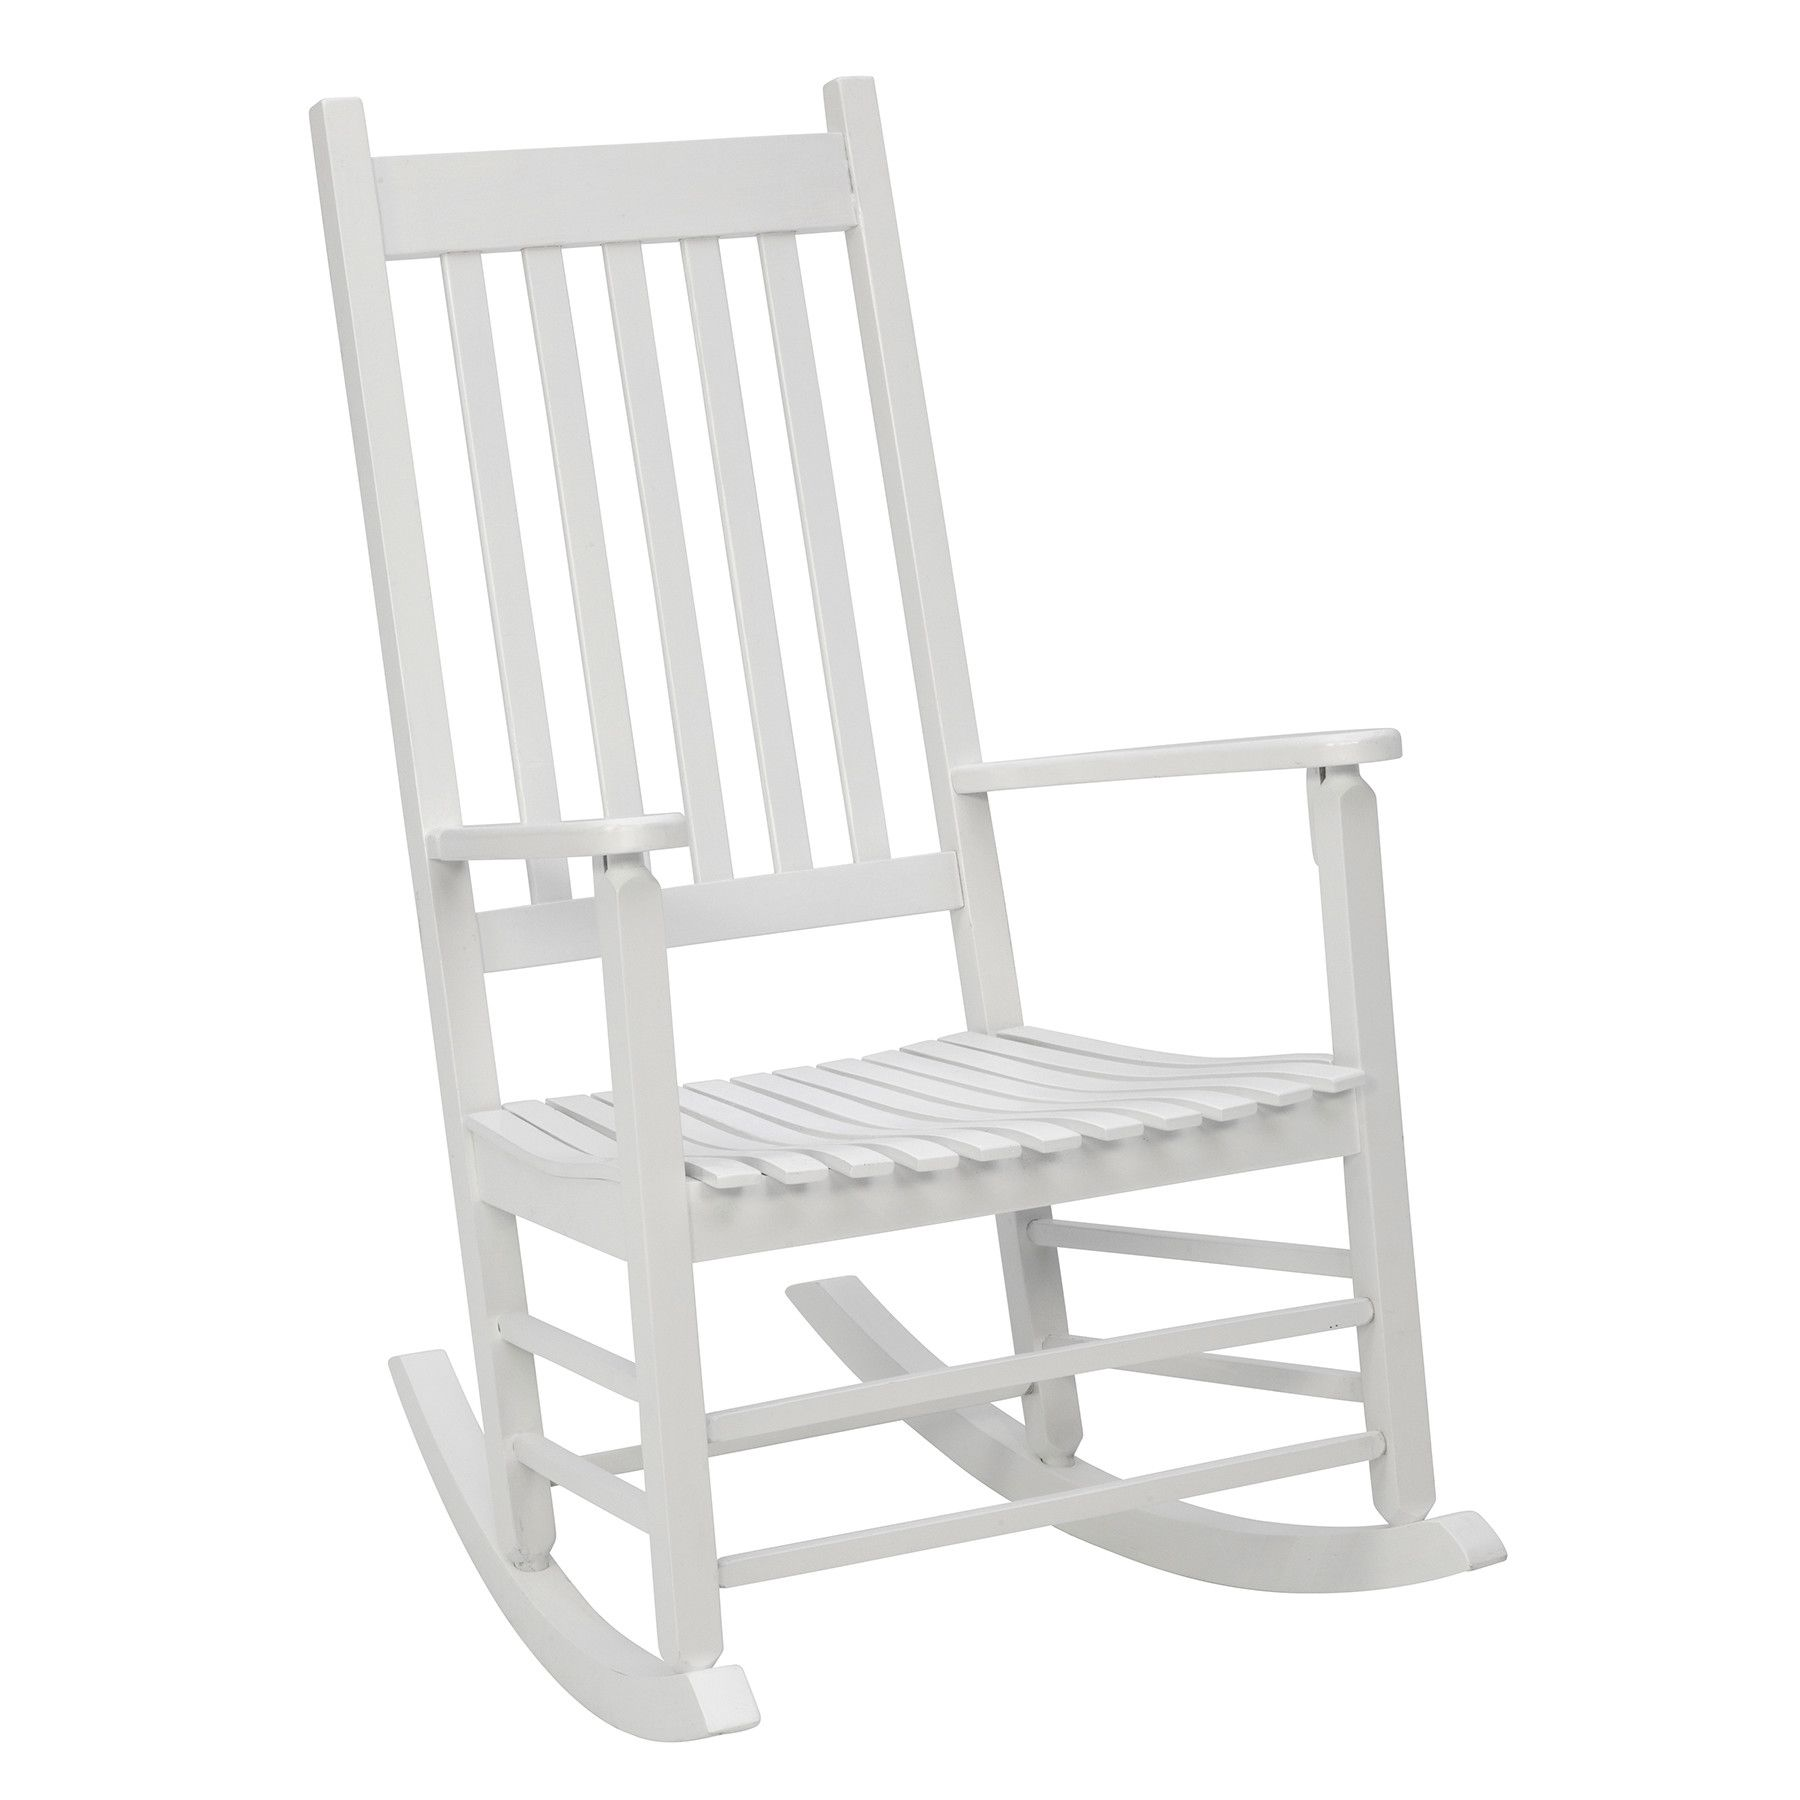 white wooden rocking chair canada outdoor furniture fire pit table and chairs jack post mission yard porch pinterest